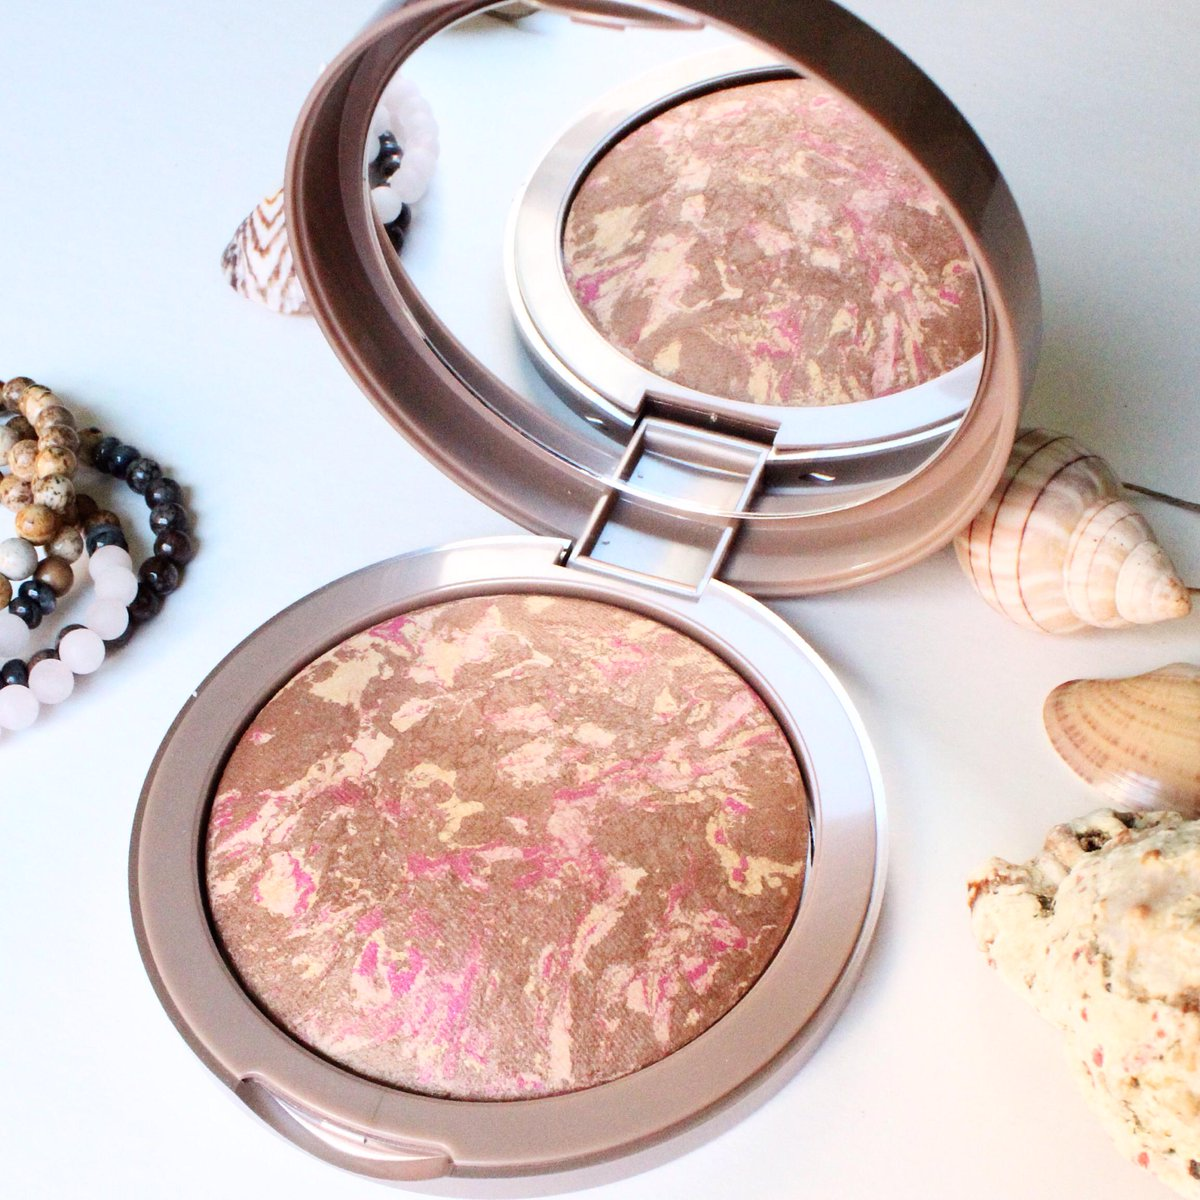 Our new #RivagesLW bronzing powder is perfect for a sun-kissed complexion & a healthy glow! > http://t.co/xQSoIZhfuX http://t.co/RViEmzSN0U